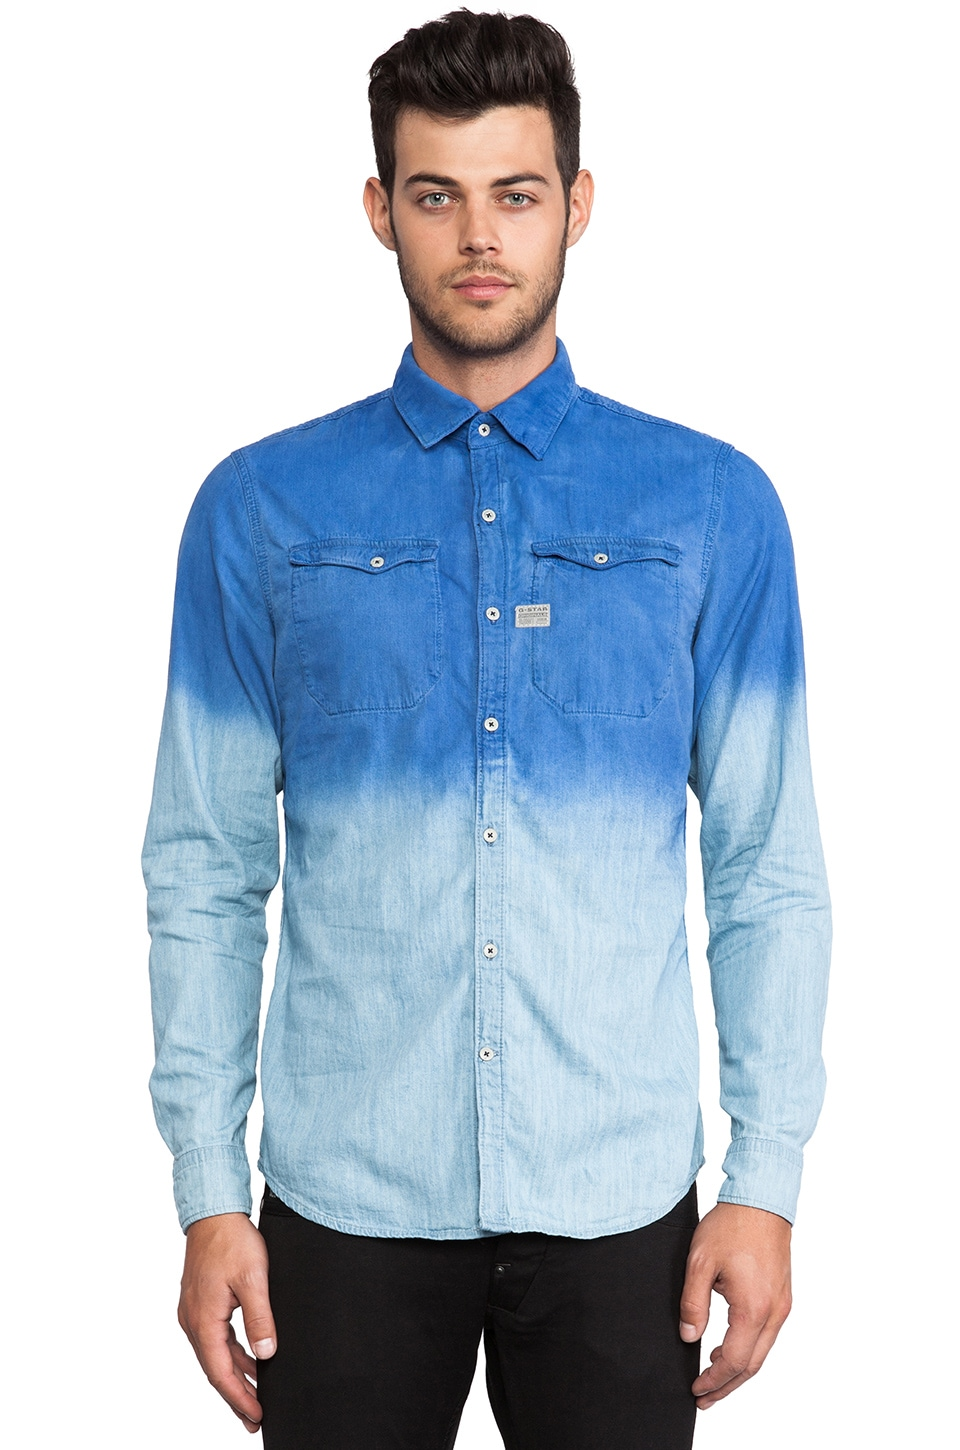 G-Star Cromart Dip Avery Denim Shirt in Indigo